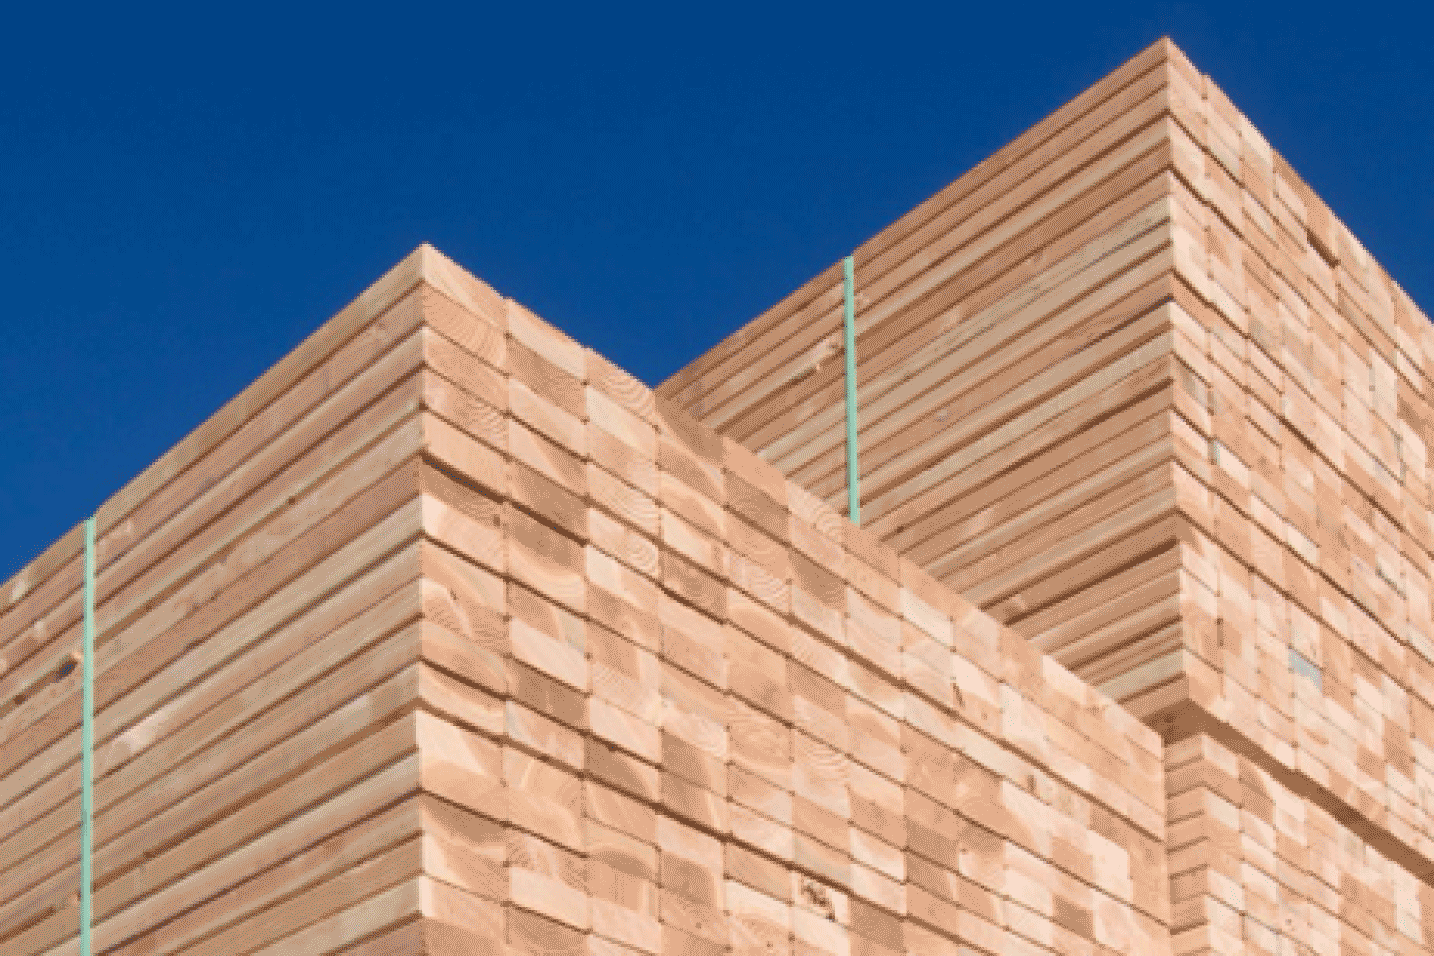 Lumber Pile with Blue Sky